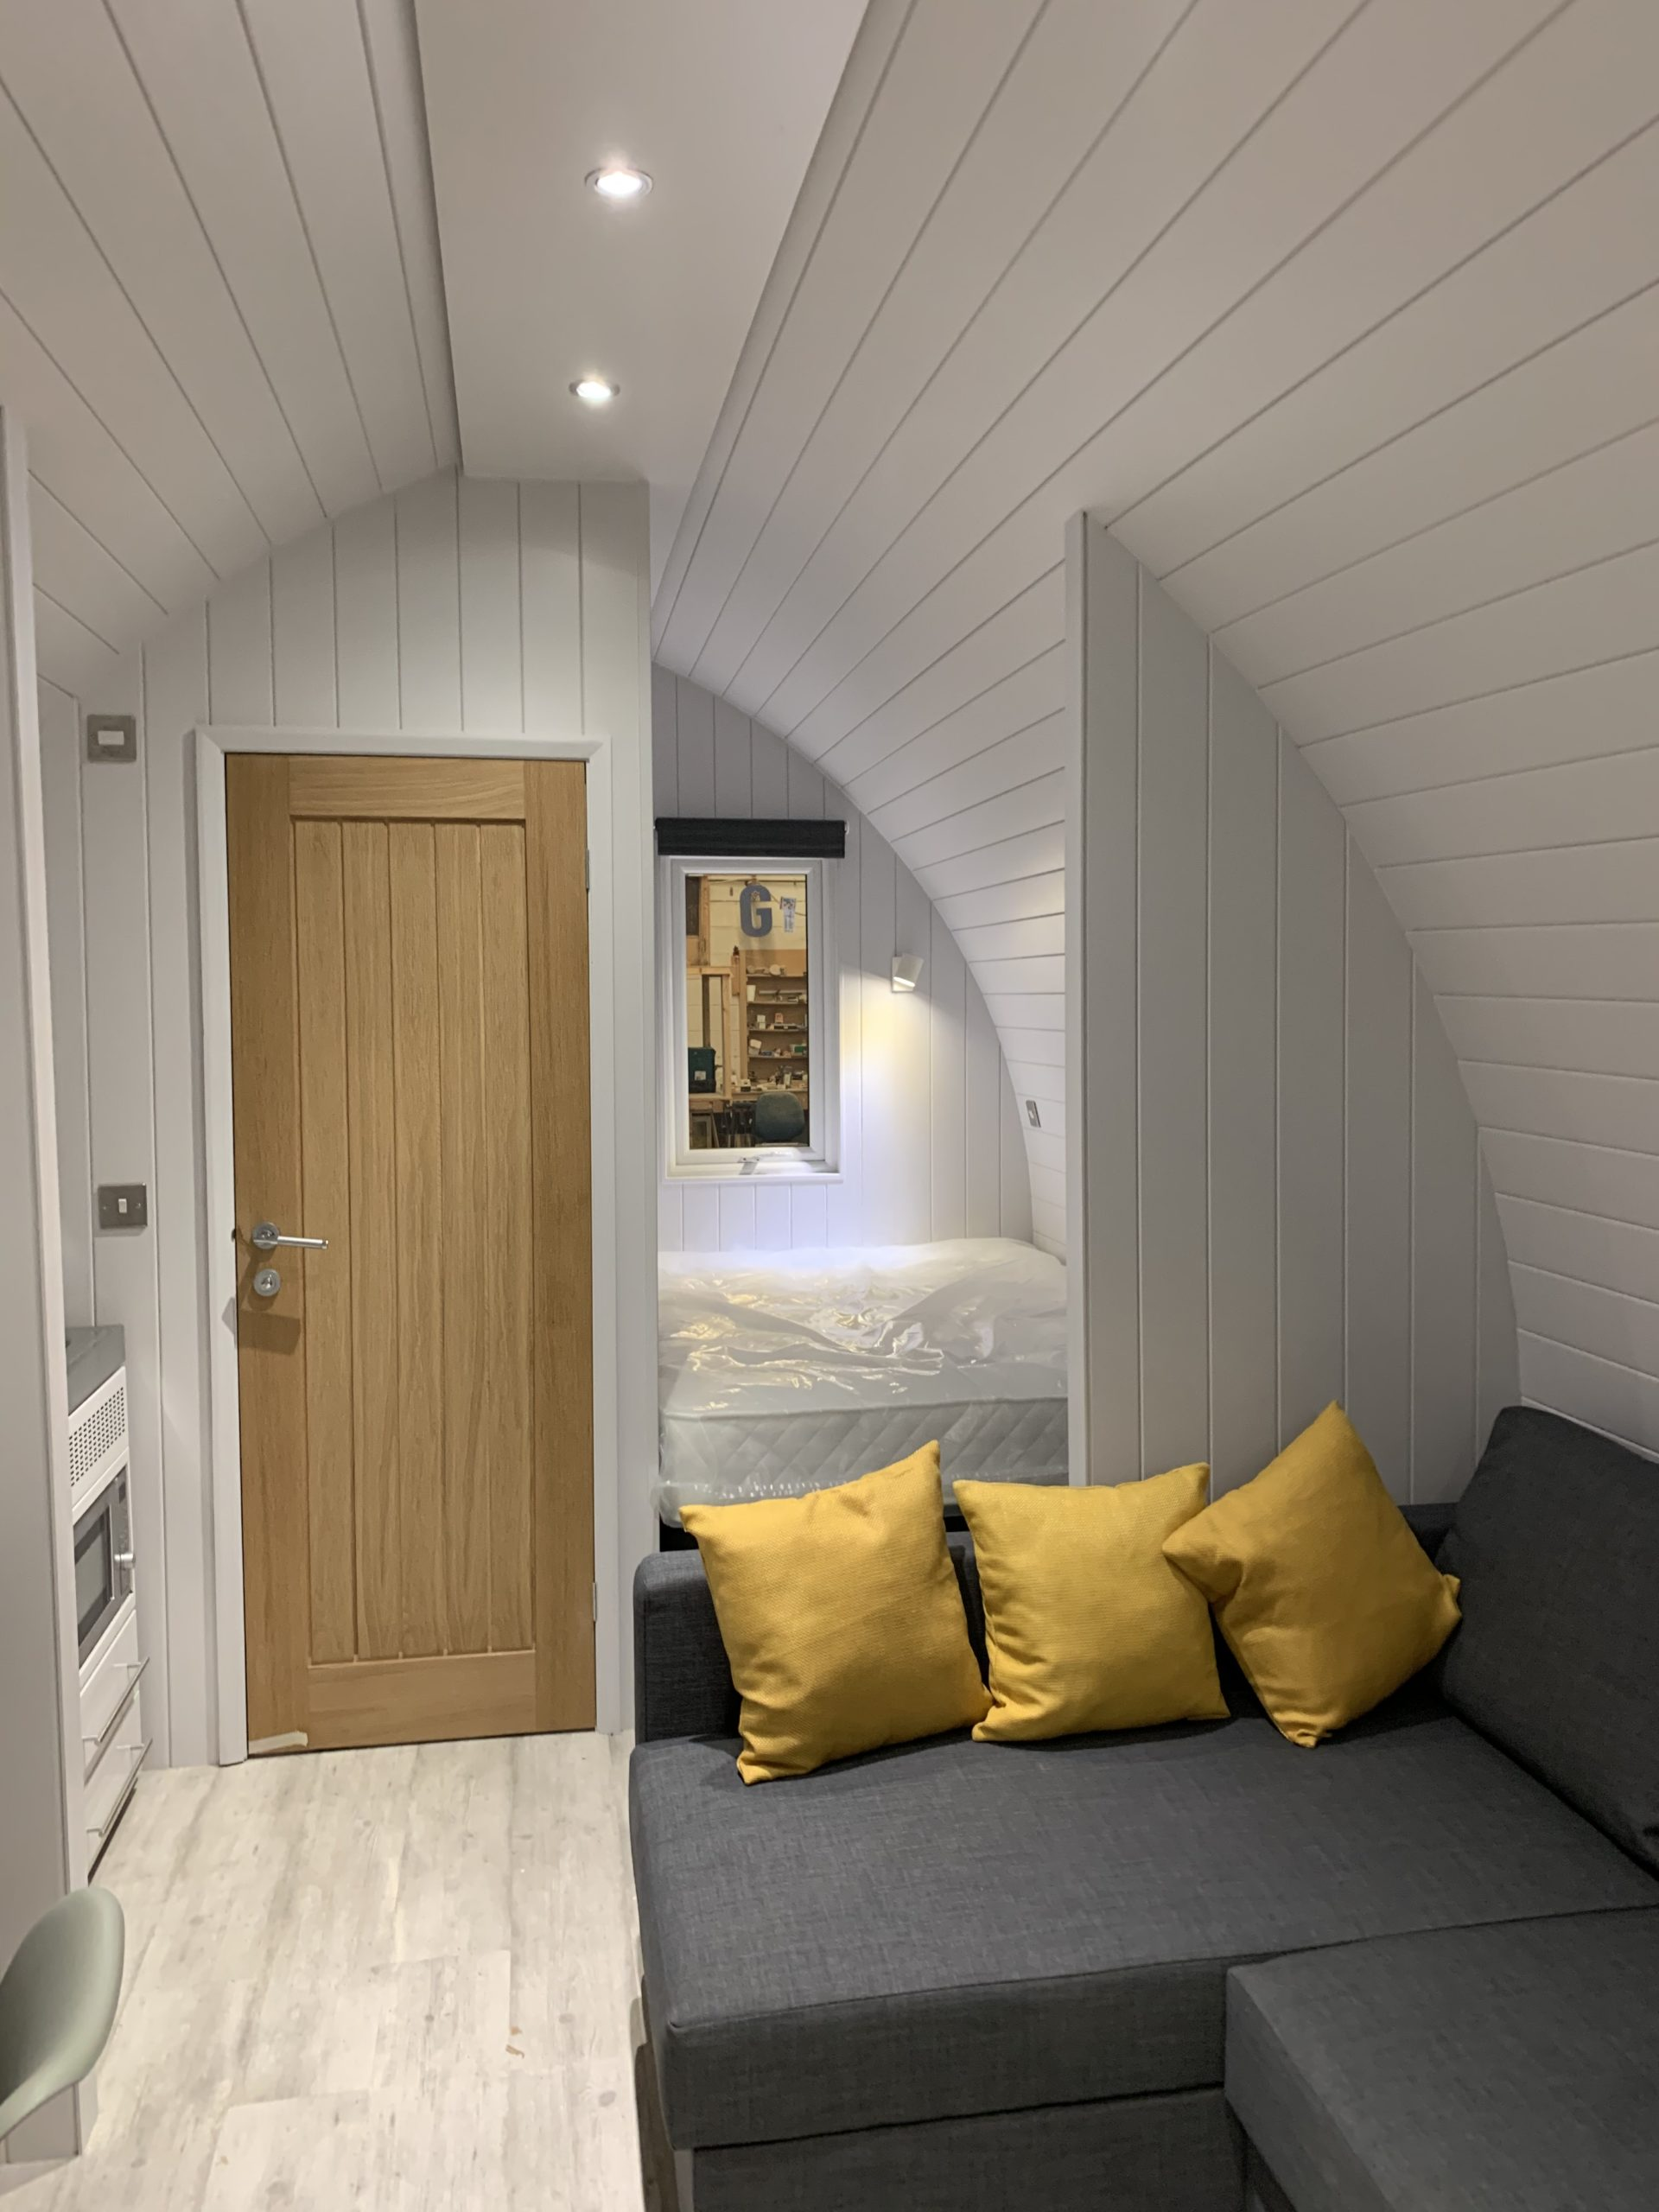 glamping pod interior shot of lounge and bedroom area with soft furnishings - glamping pods